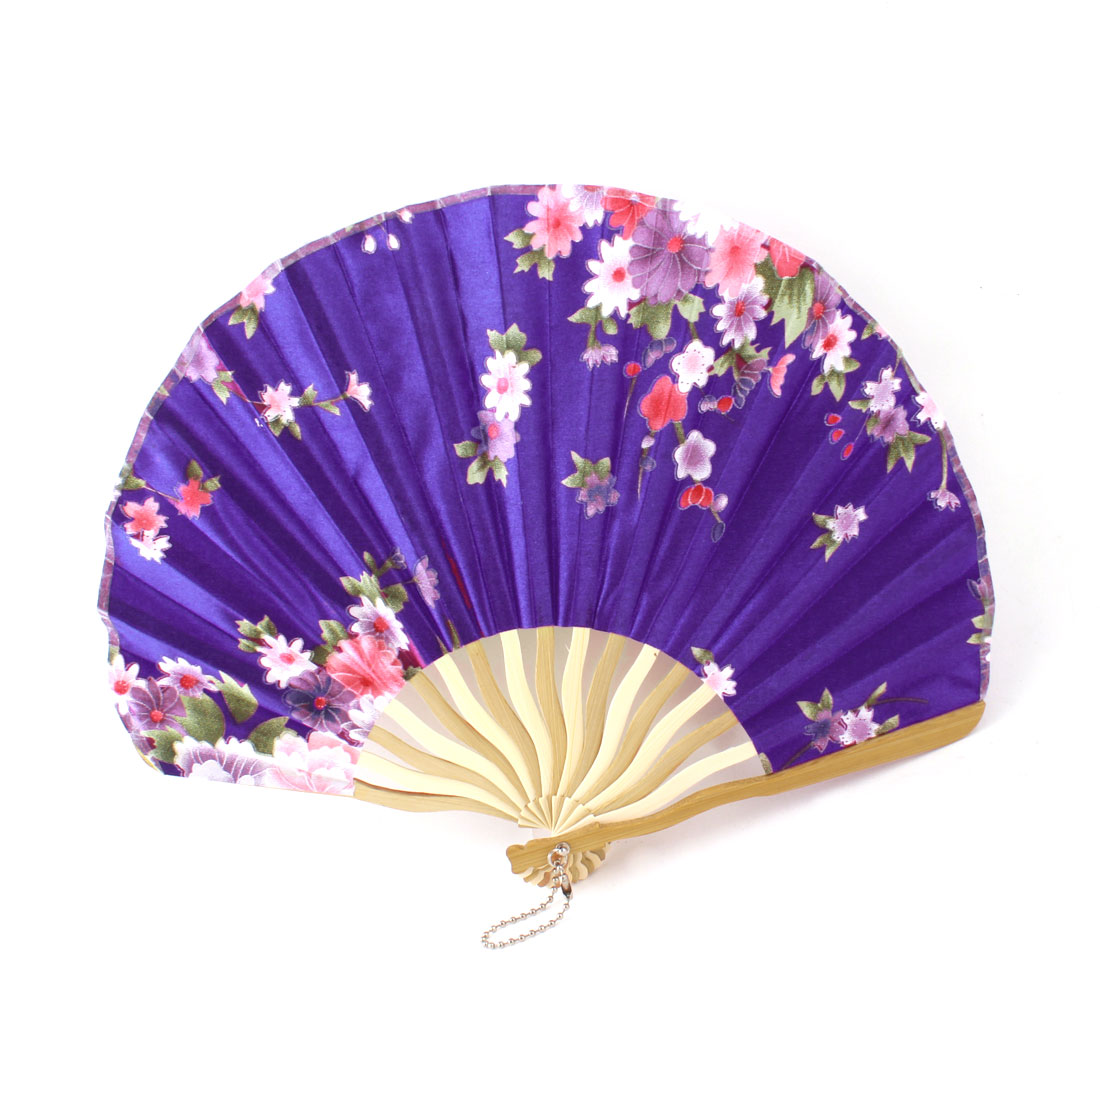 Lady Beige Bamboo Ribs Flower Printed Summer Cool Folding Hand Fan Purple